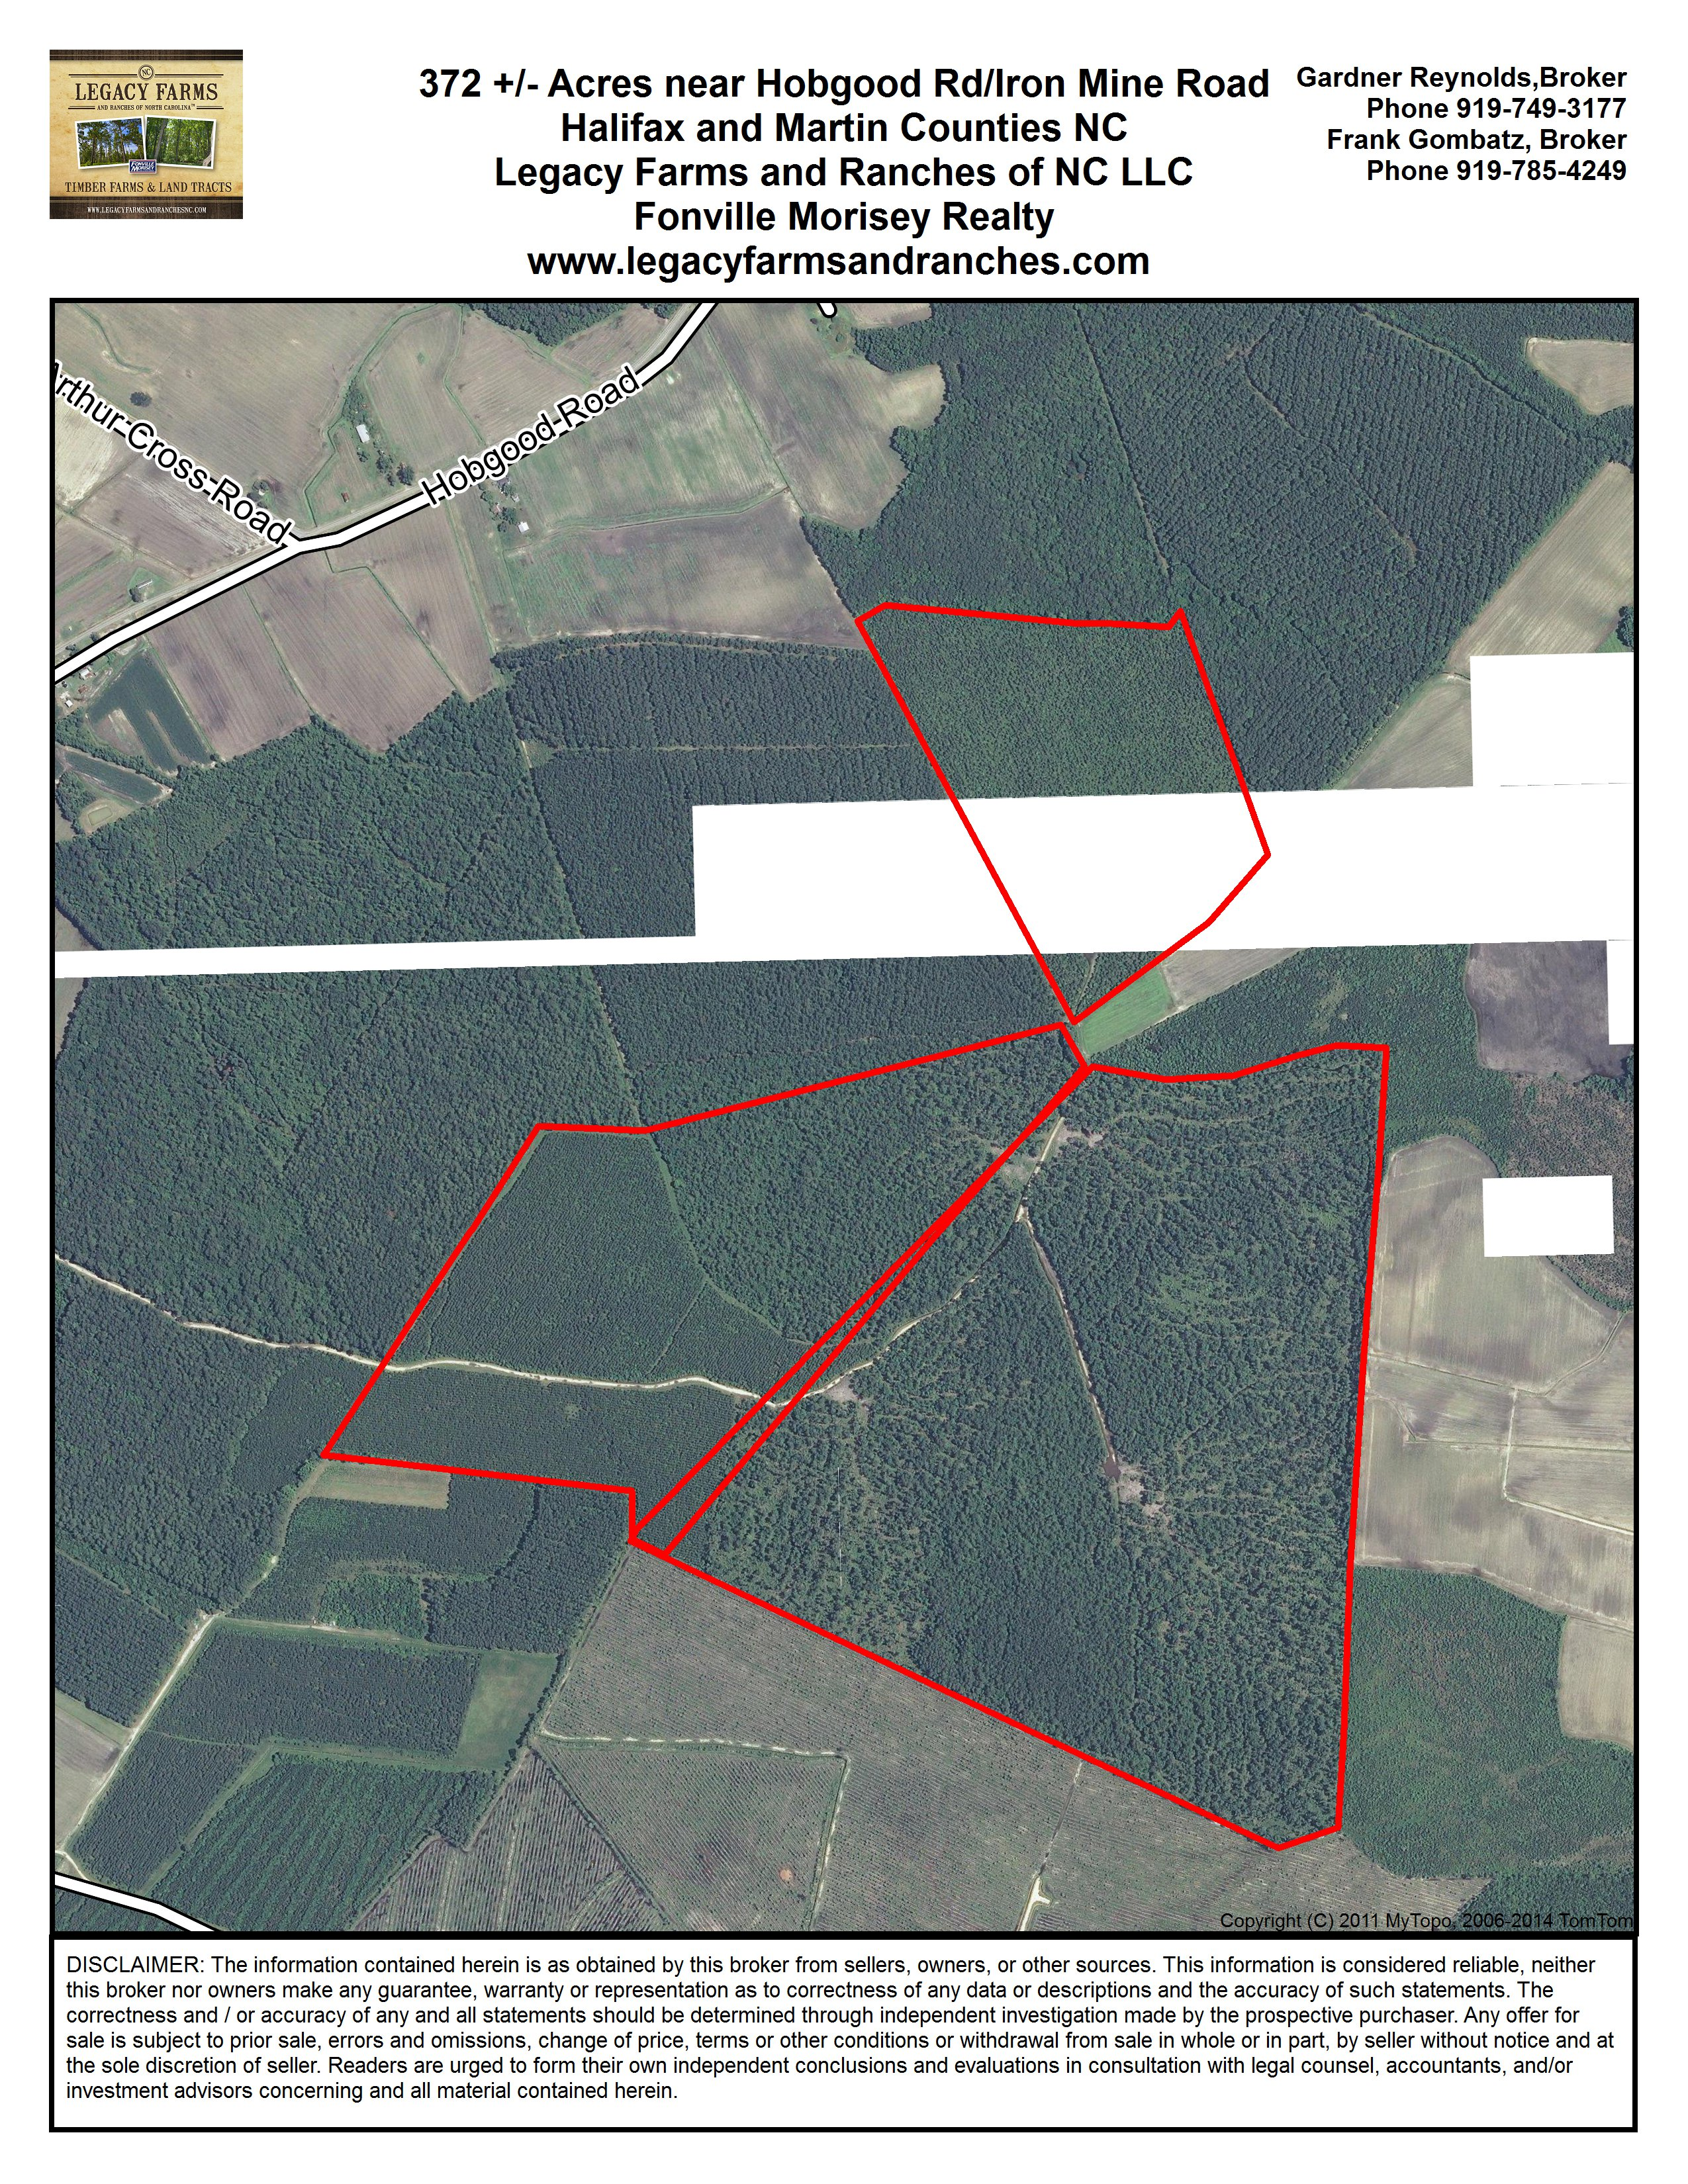 362 acres on Halifax Martin County Line